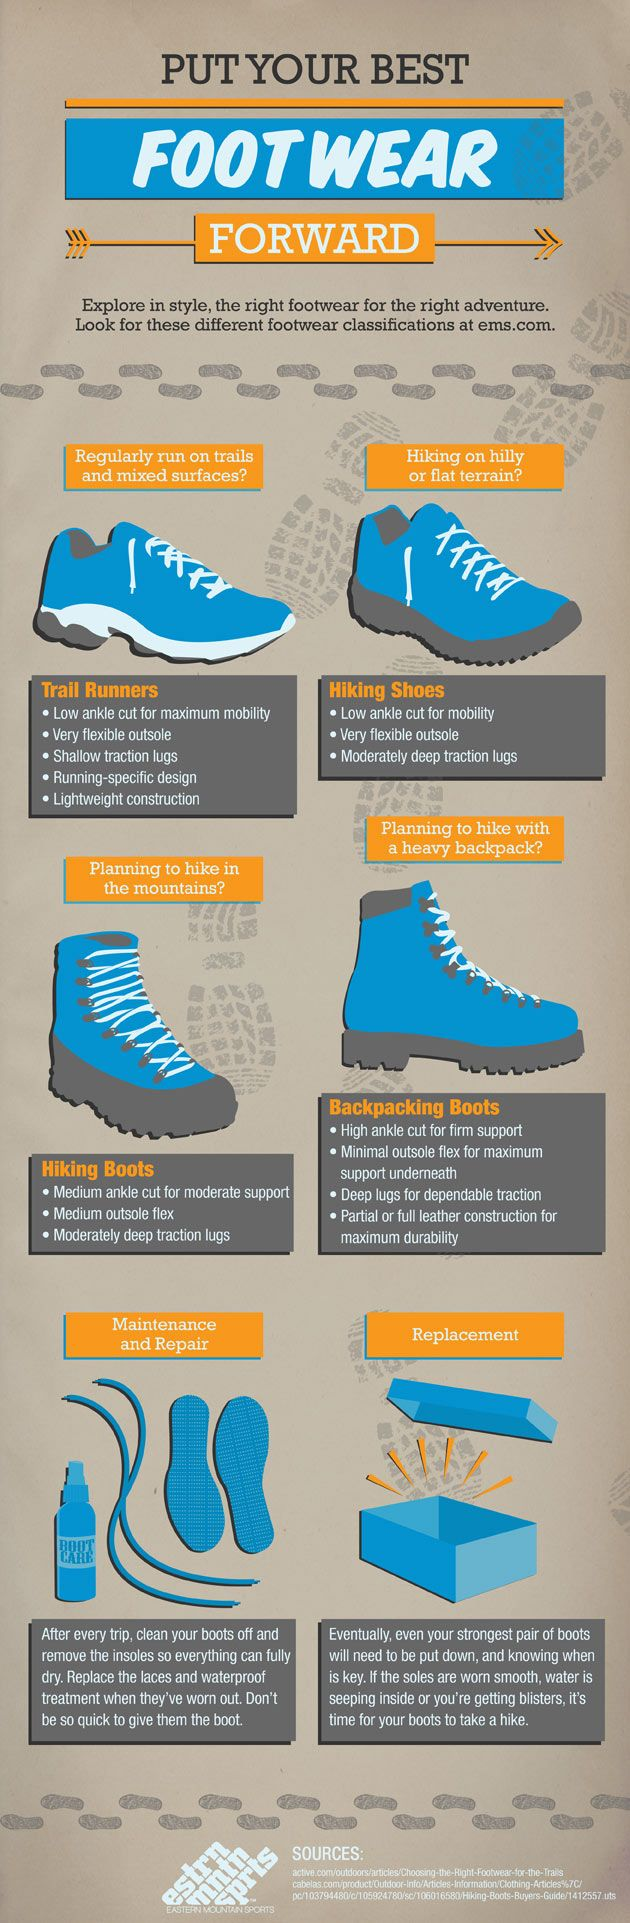 Footwear Style Guide - Put Your Best Footwear Forward